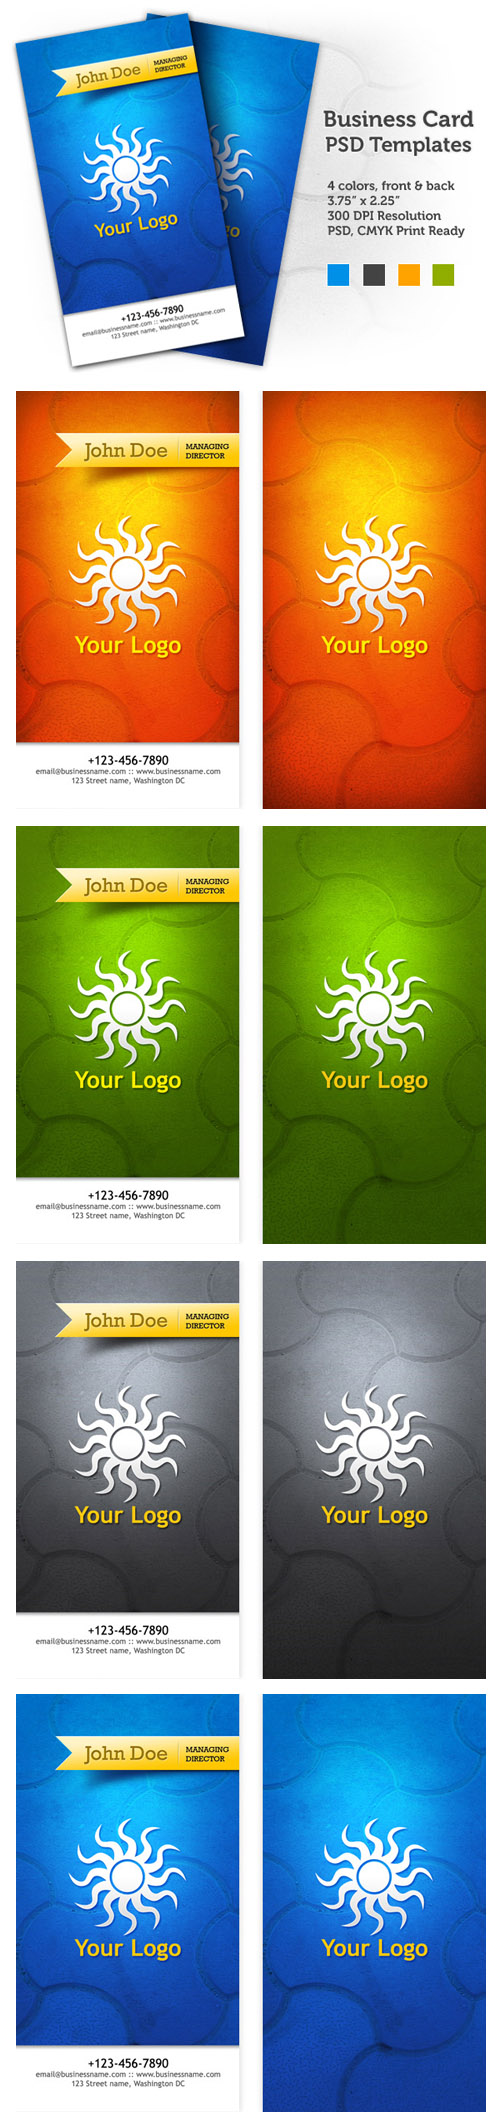 Stylish Business Cards - PSD templates